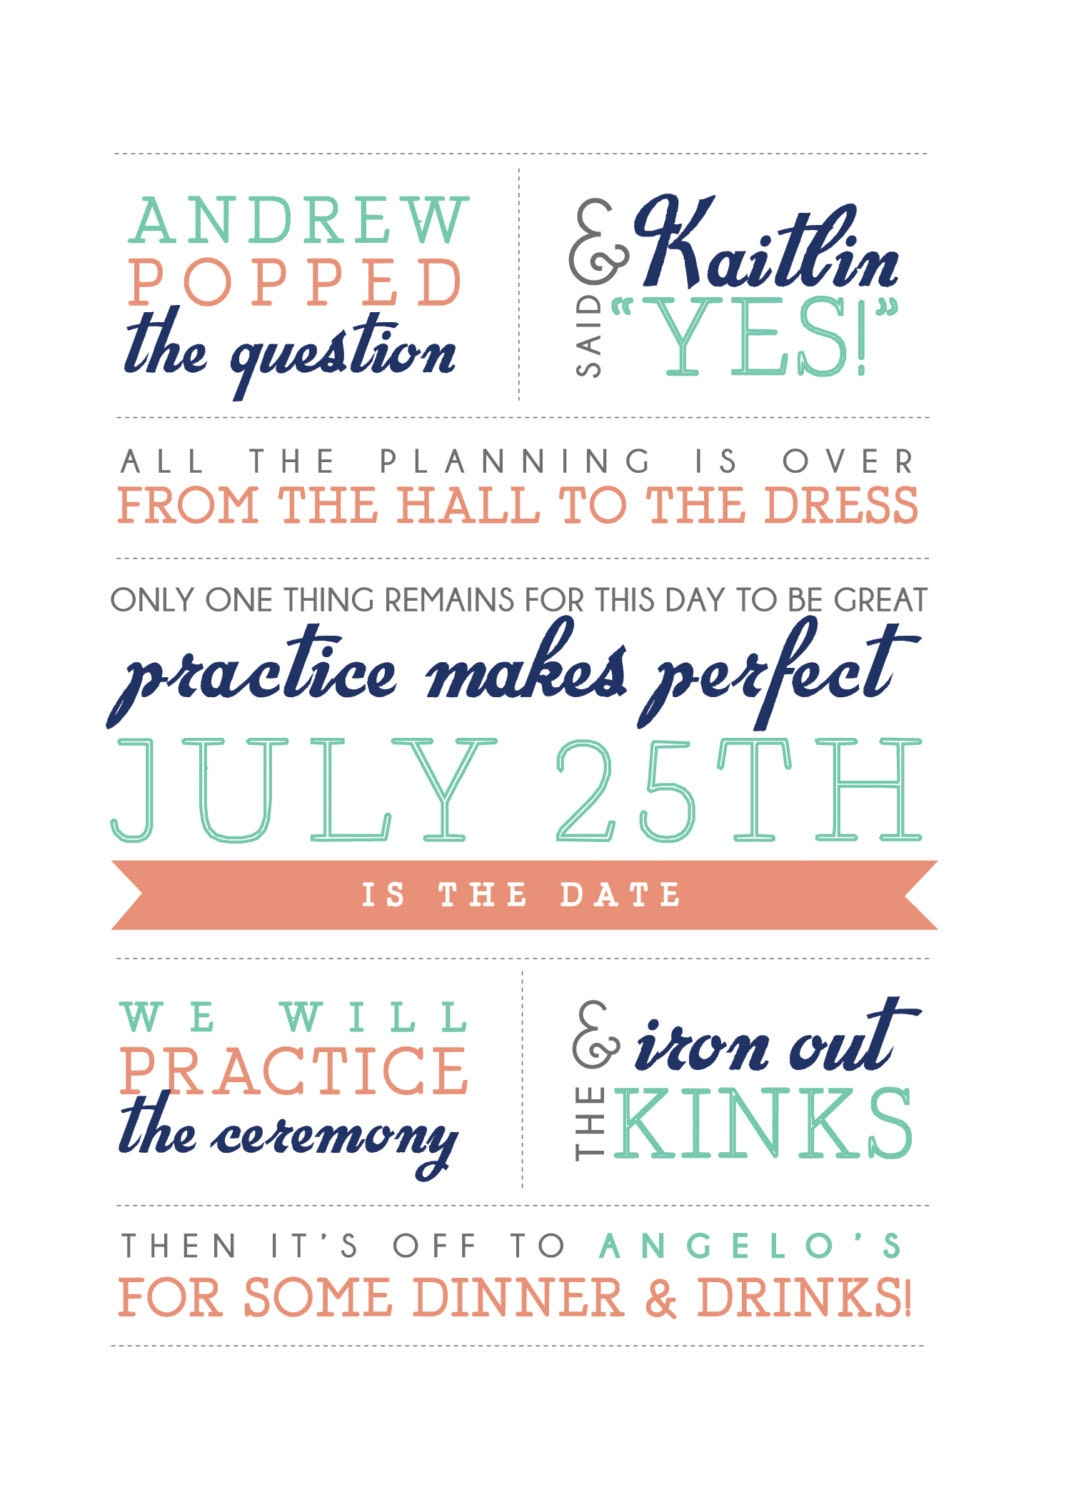 Printable rehearsal dinner invitation Practice makes perfect poem